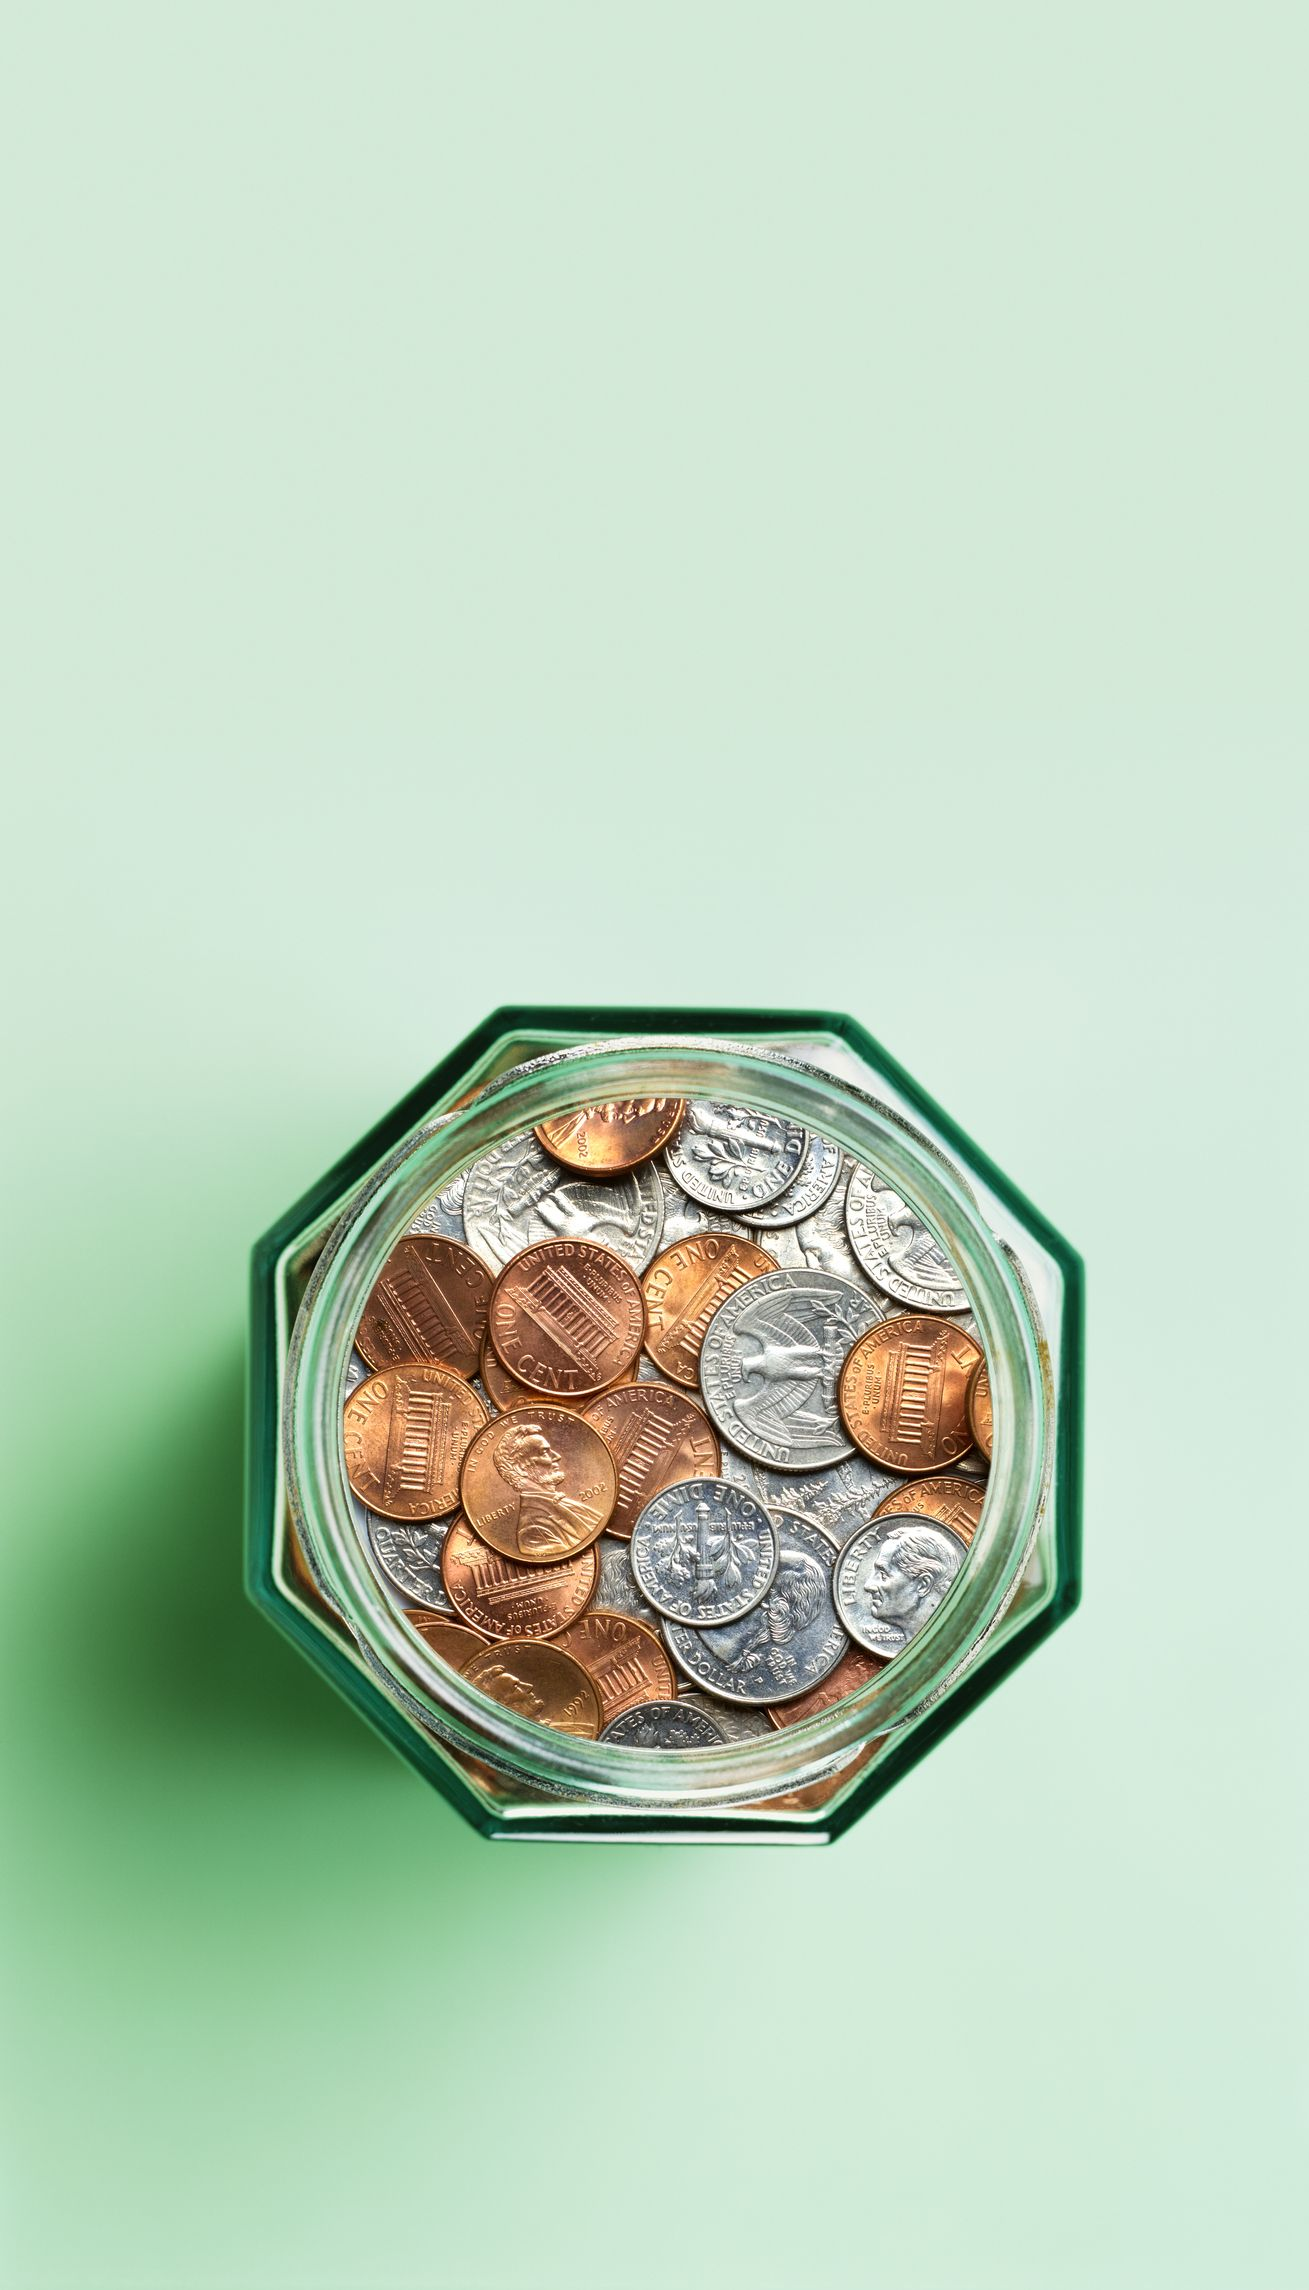 Is There a National Coin Shortage? How to Earn Extra Cash for Your Coins